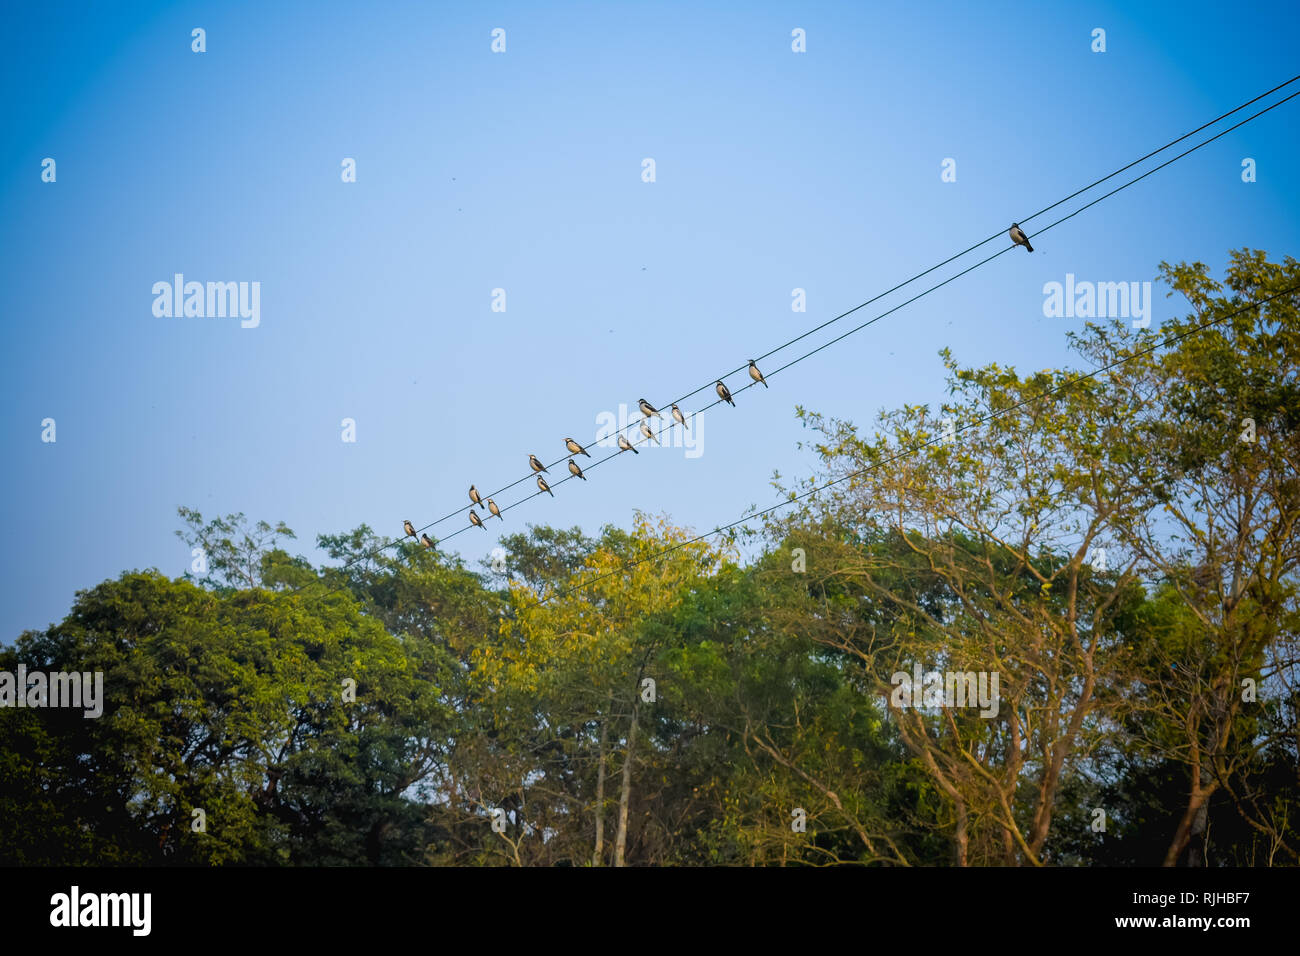 Flock of migrating Sparrow Birds sitting on a wire against the blue sky. Beautiful countryside rural summer landscape of a rural Indian village. Stock Photo